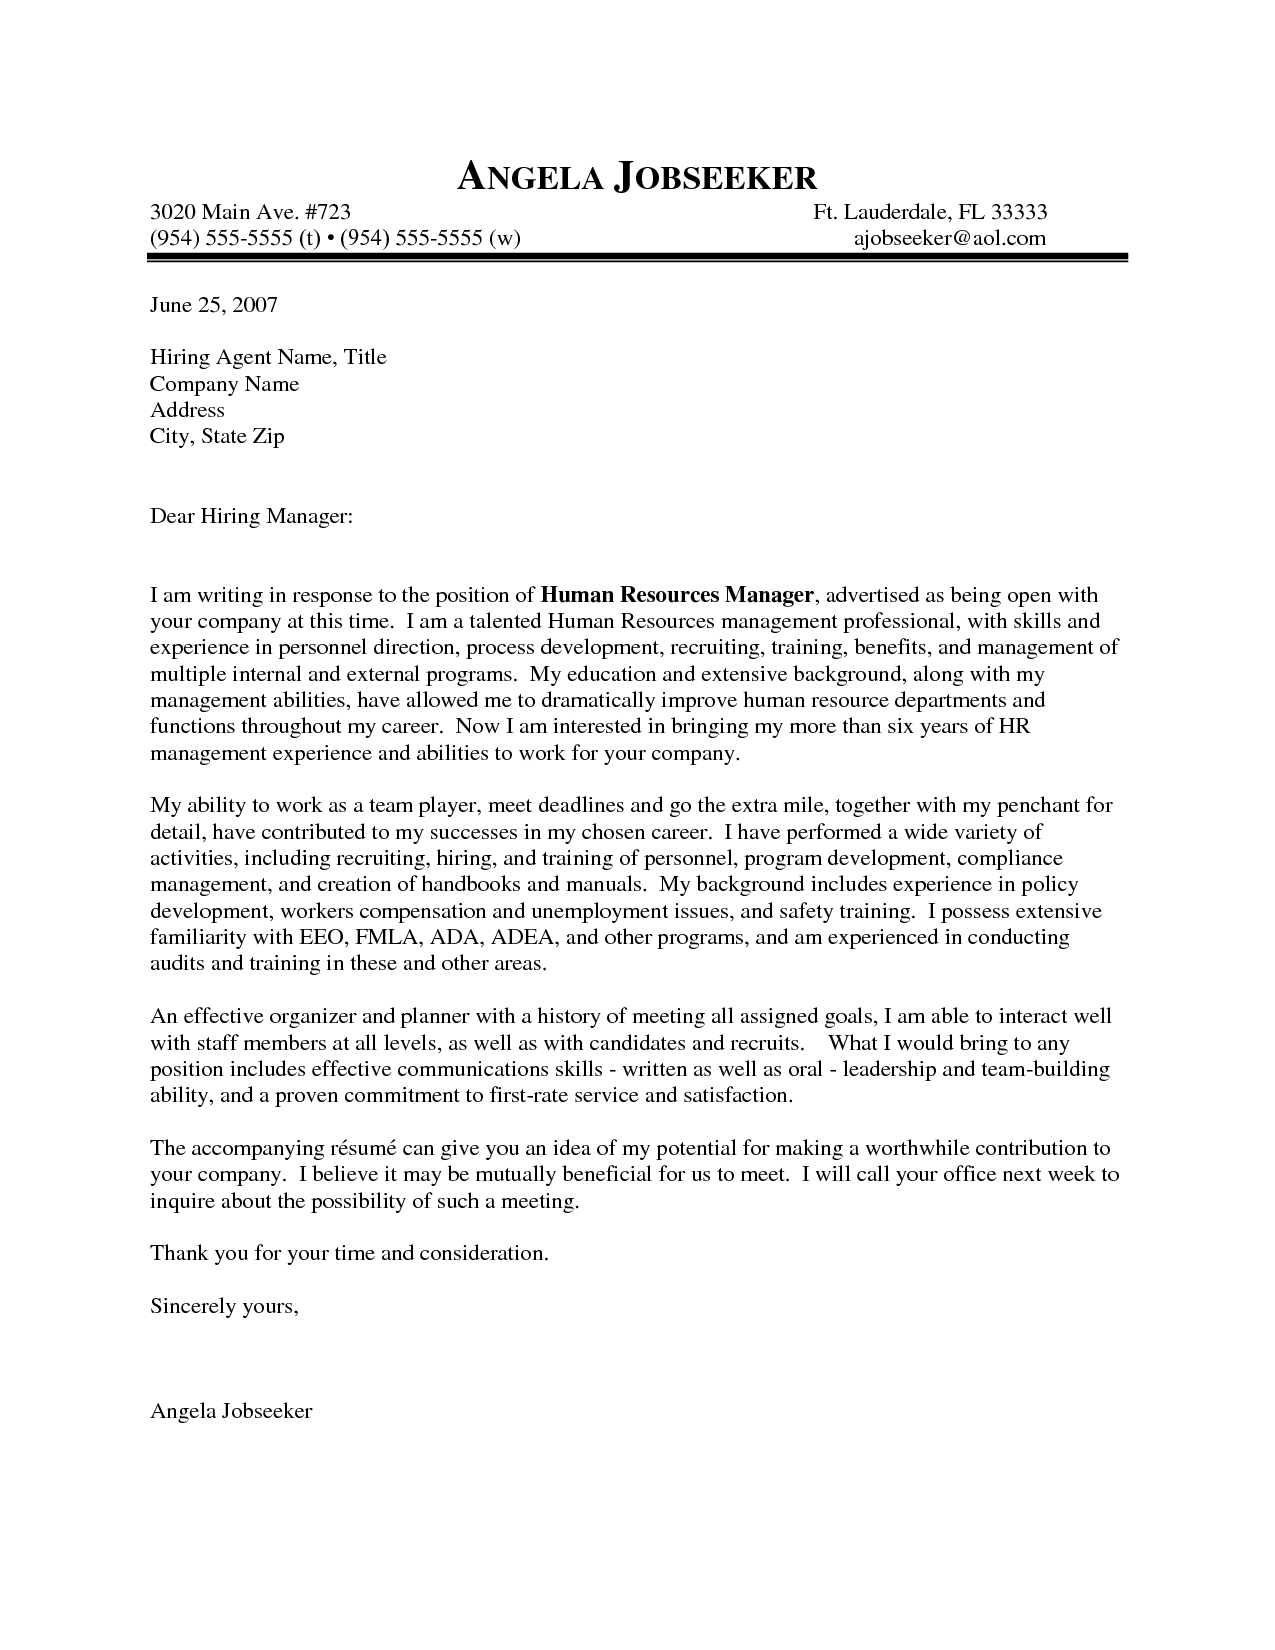 outstanding cover letter examples hr manager cover letter example - How To Make A Resume And Cover Letter